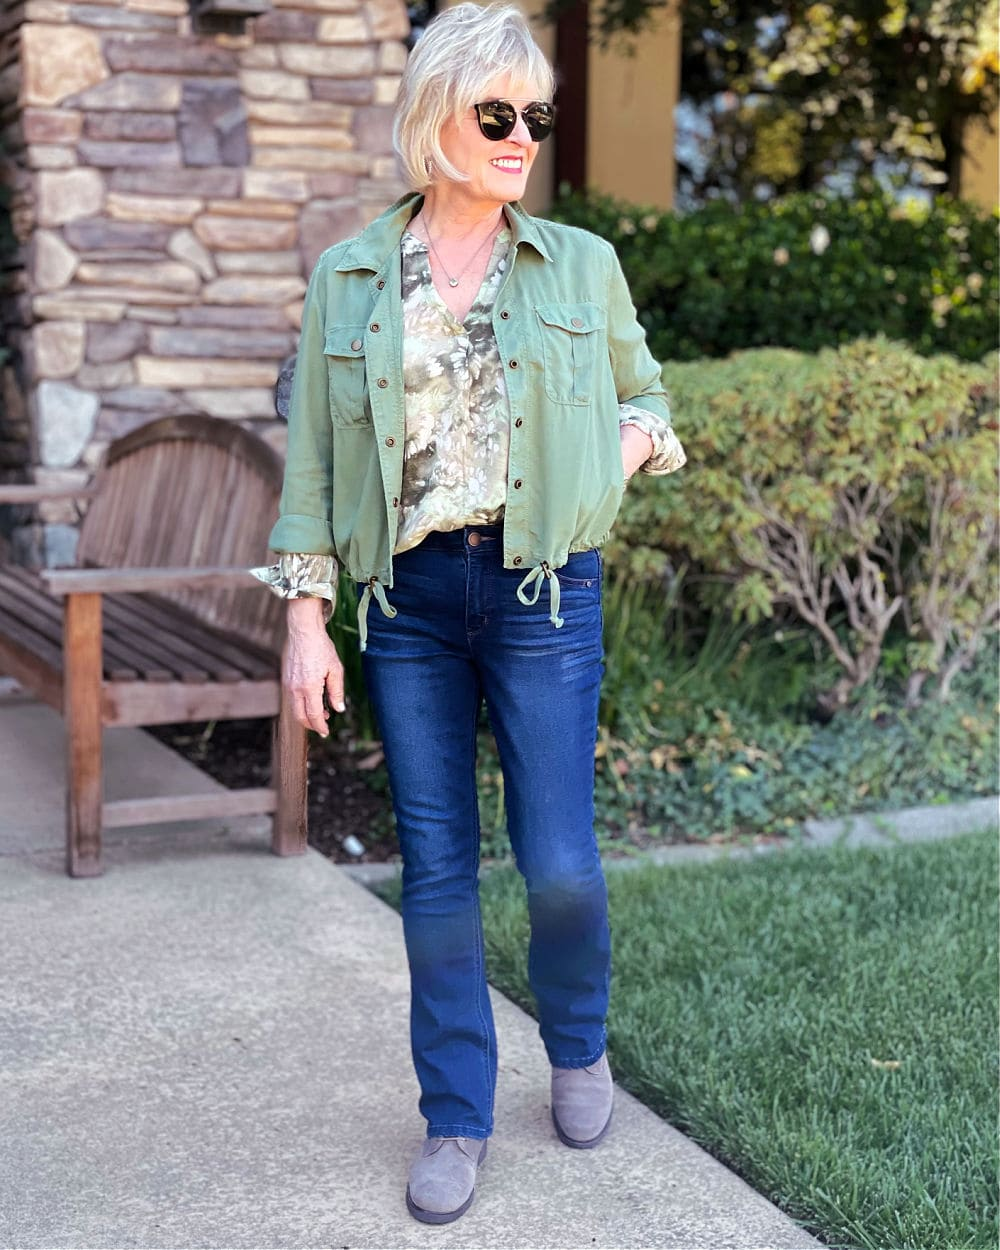 over 50 blogger jennifer connolly of a well stylesd life wearing loghtweight fall outfit of green utility jacket, soft blouse and jeans